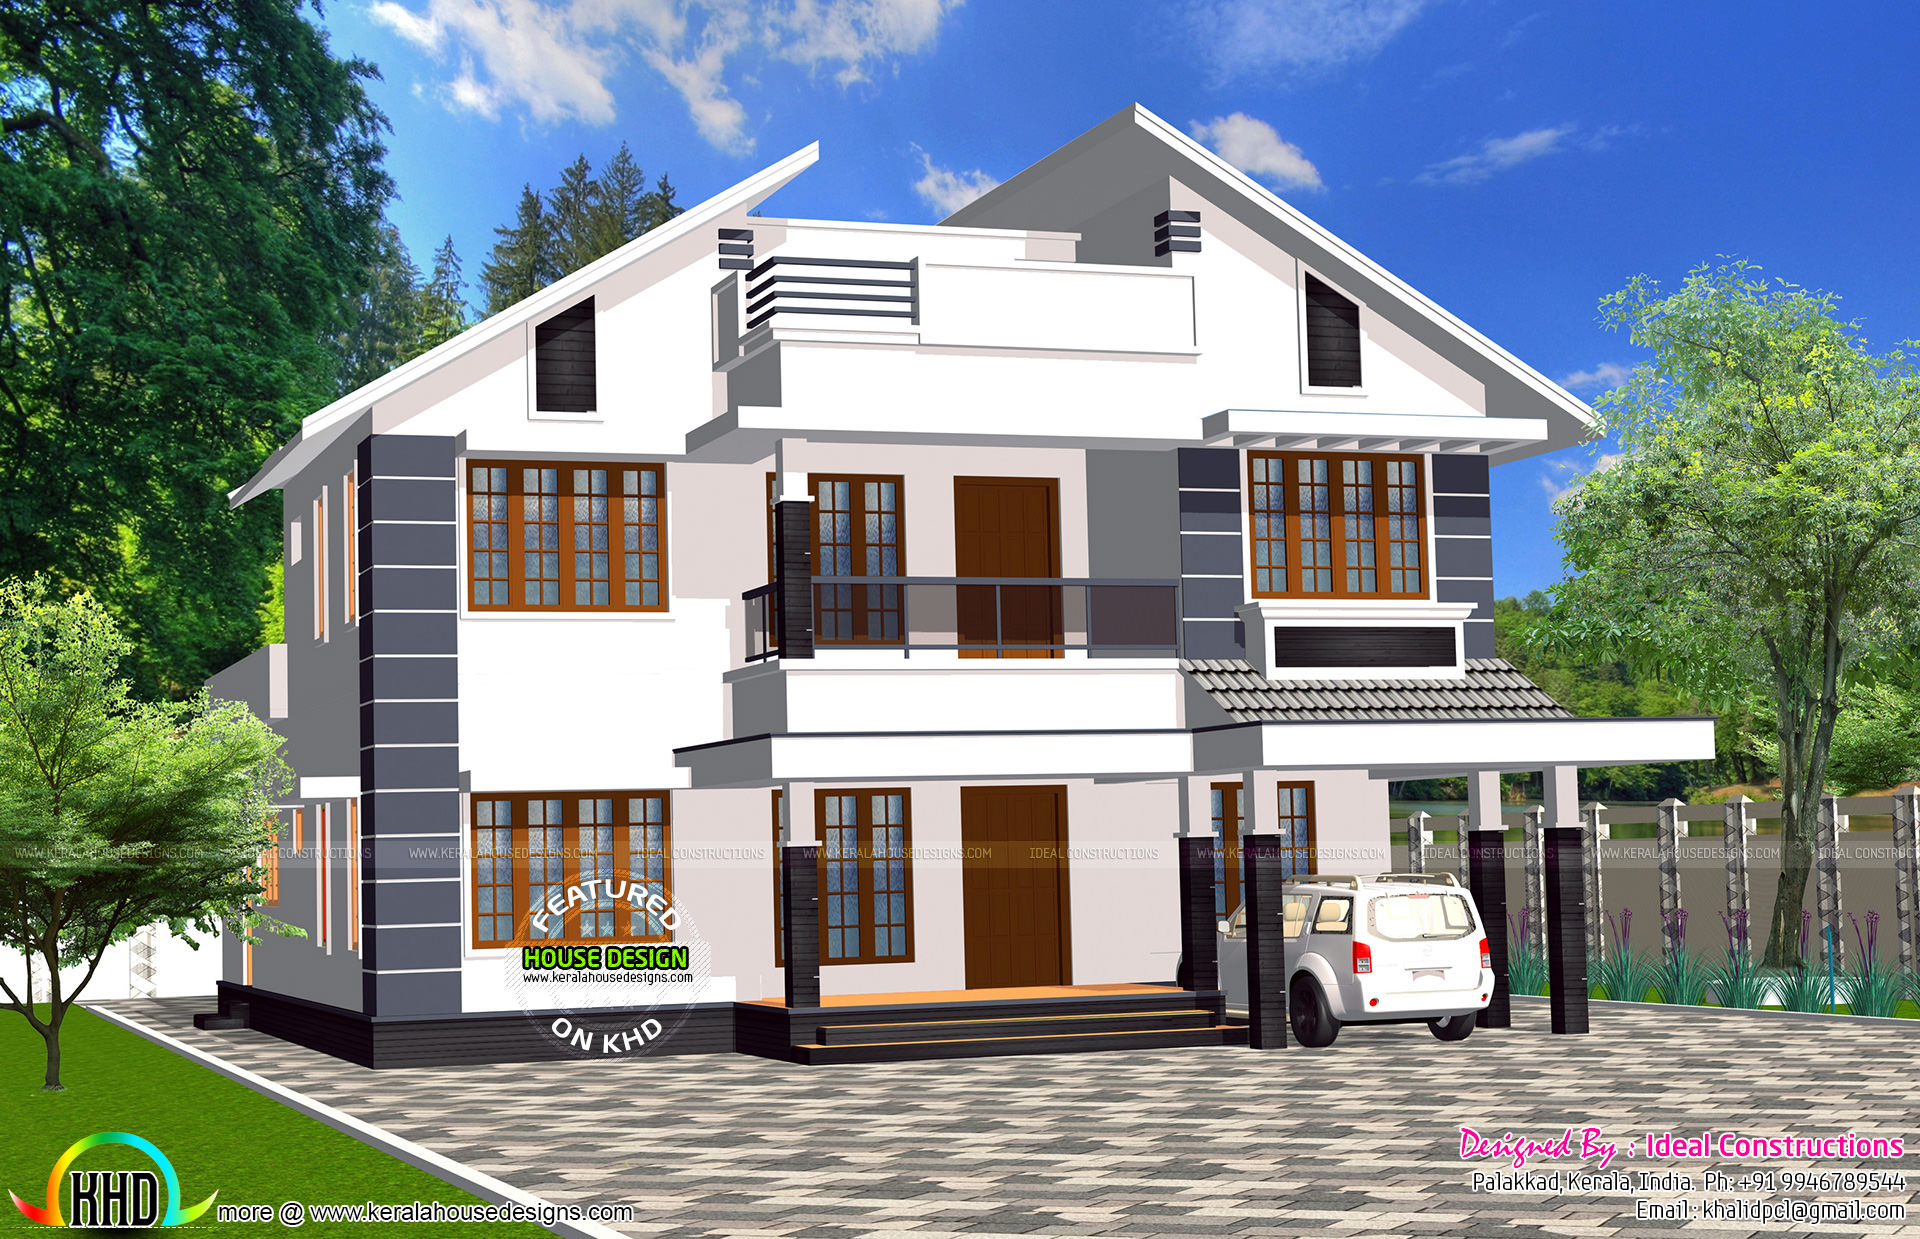 Modern slanting roof 2400 sq ft kerala home design and for Modern house plans 2400 sq ft